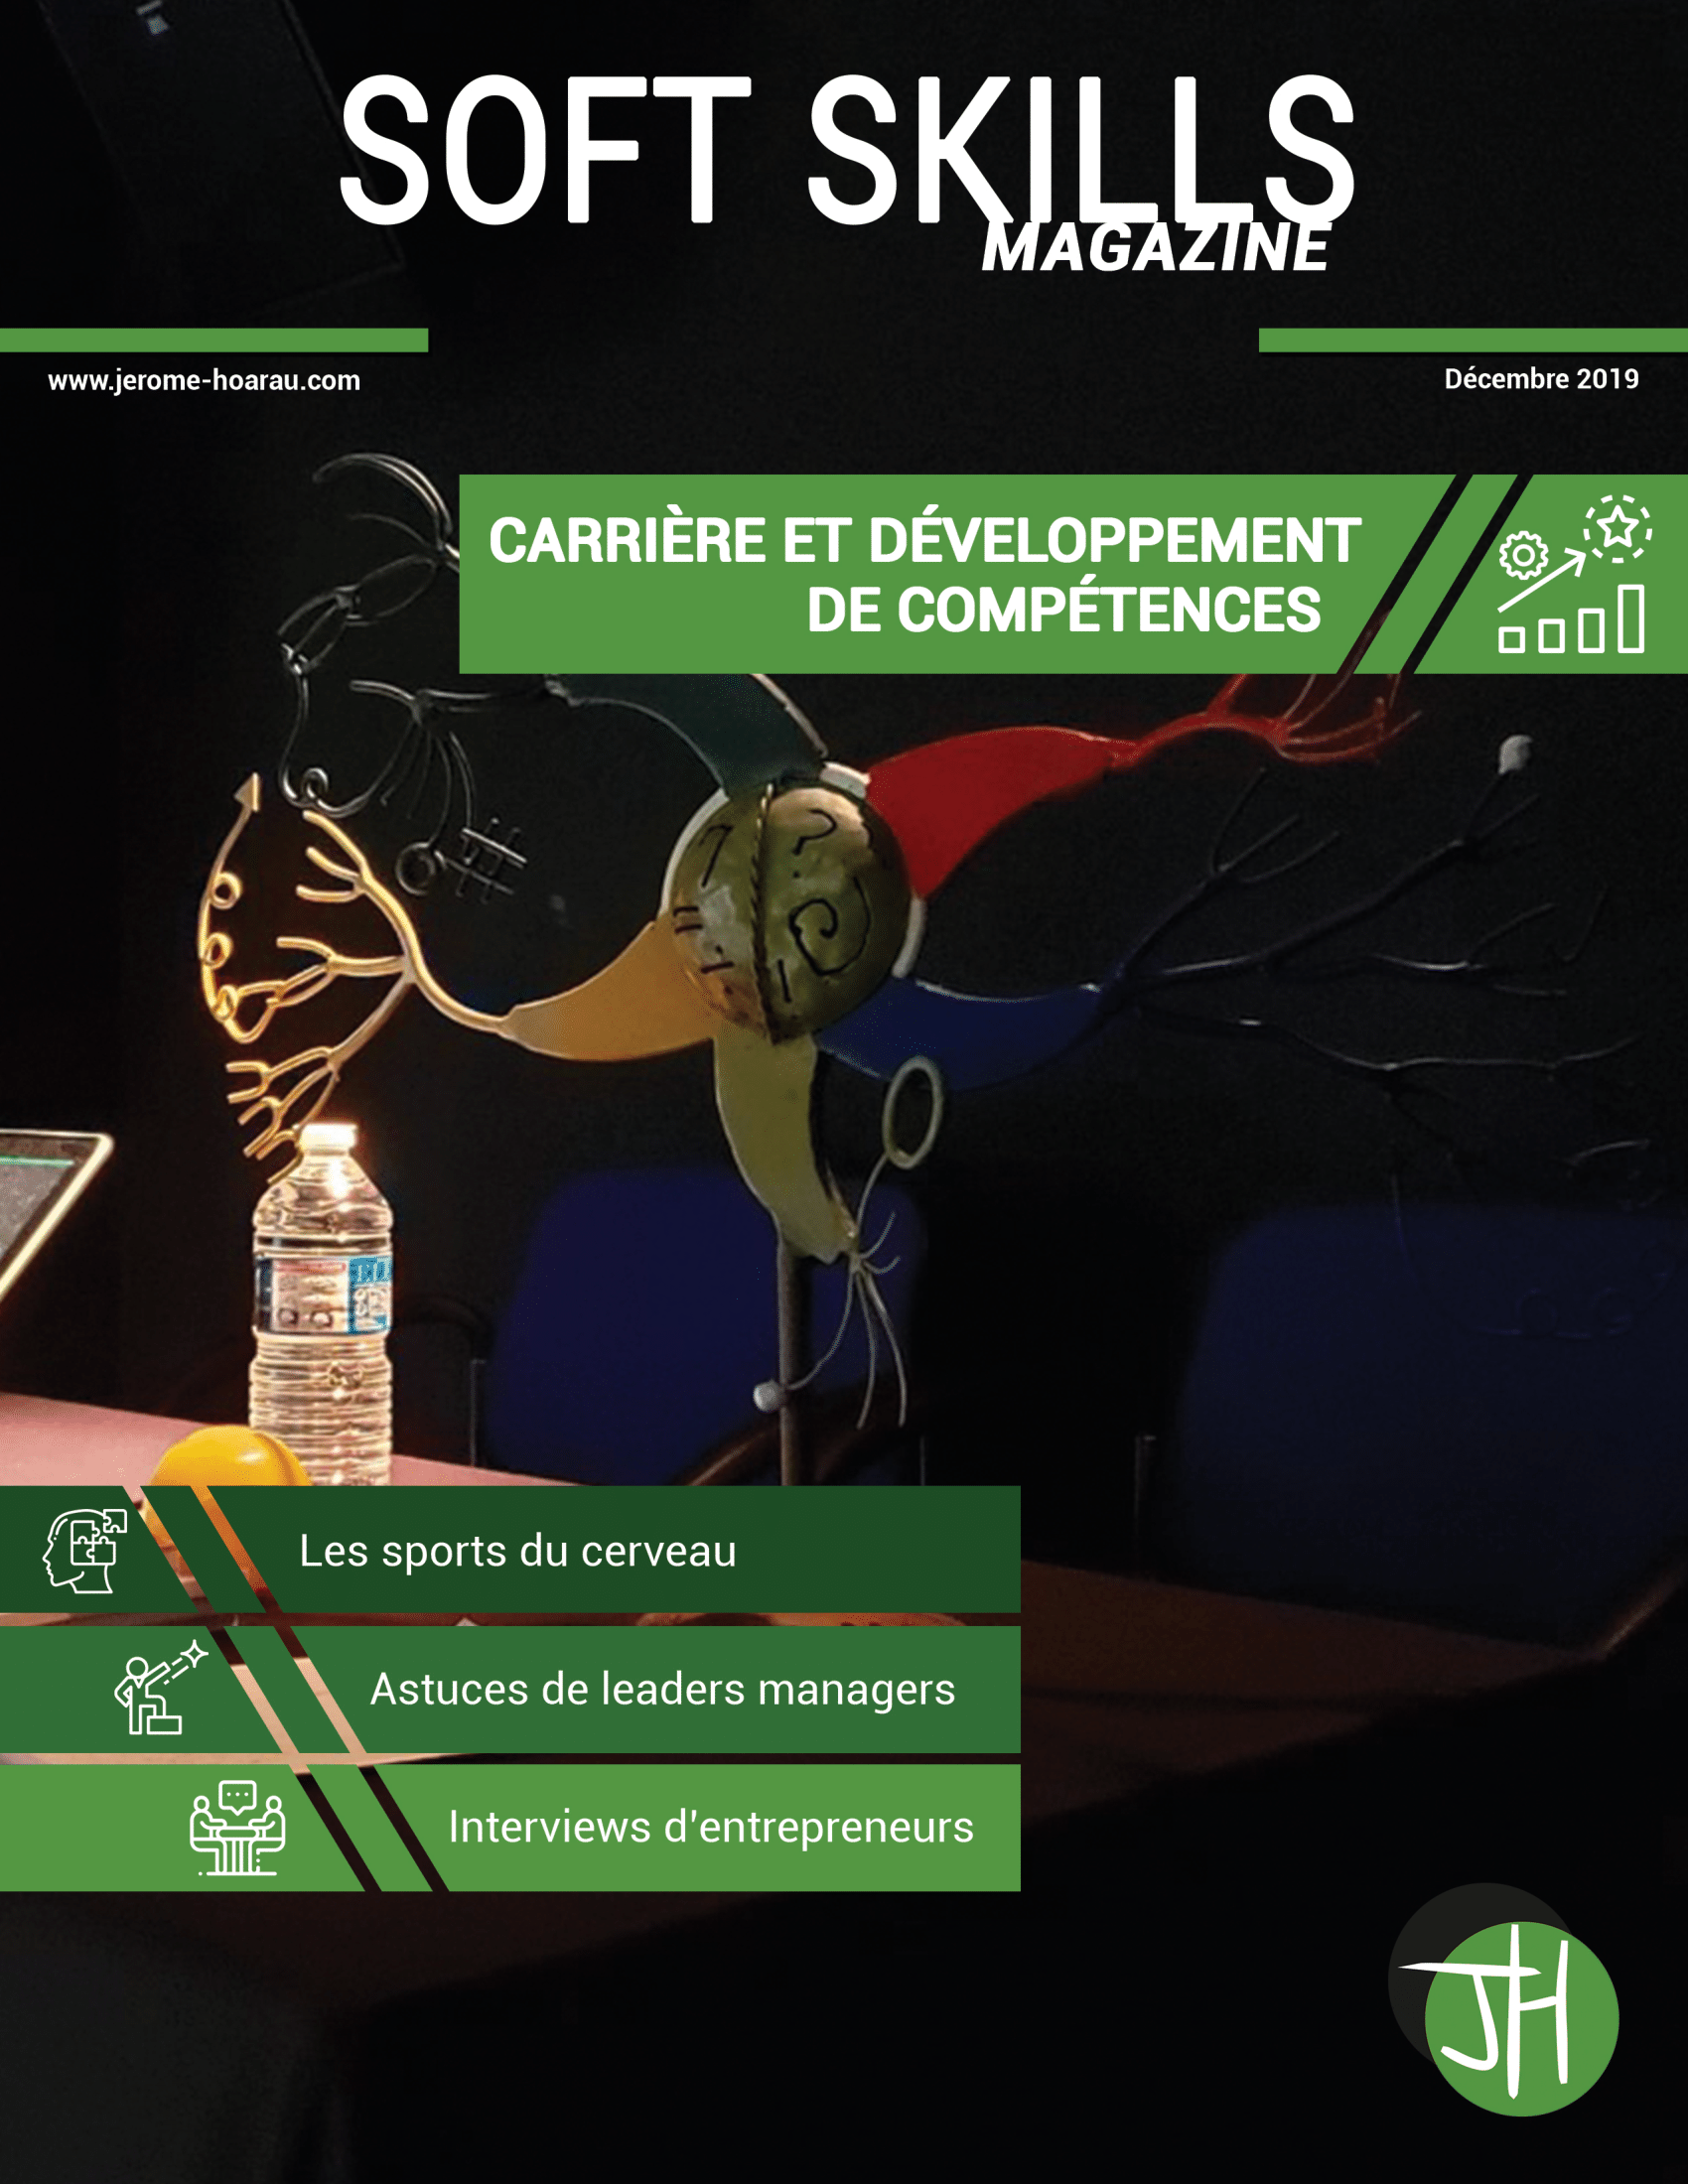 couverture softskills 2 1